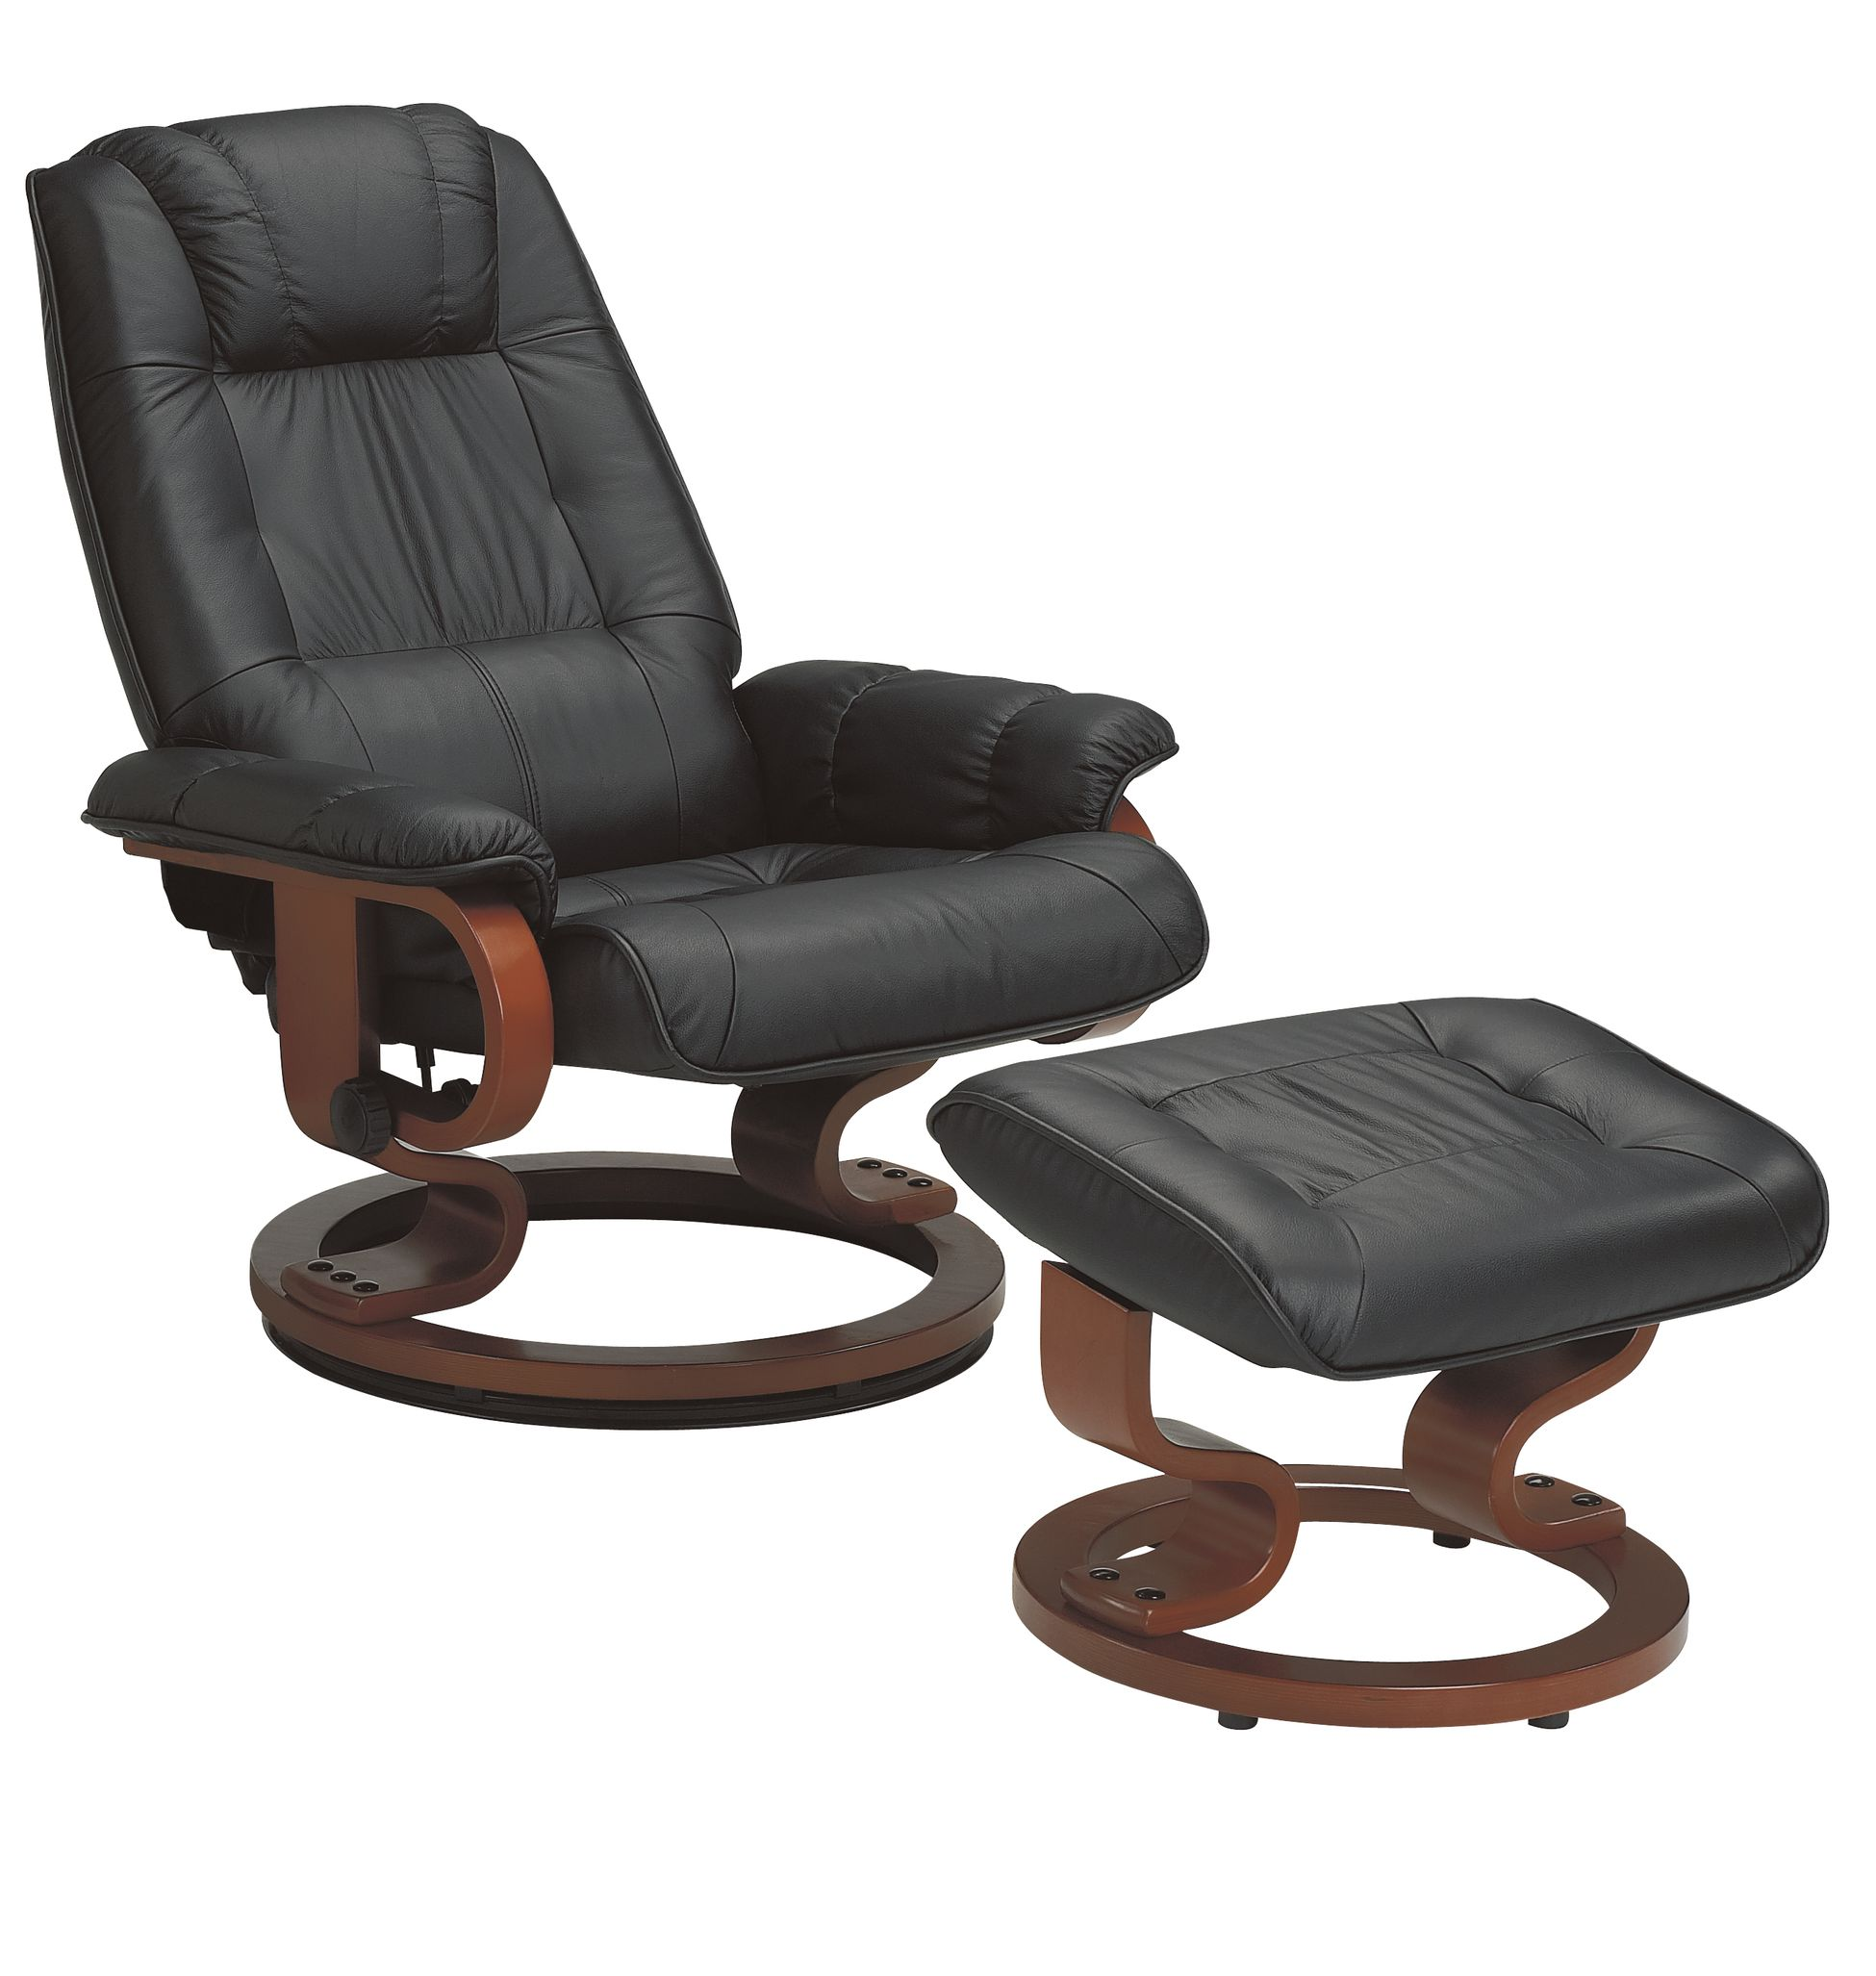 Fauteuil Relax Noir Fauteuil Relaxation Excellence